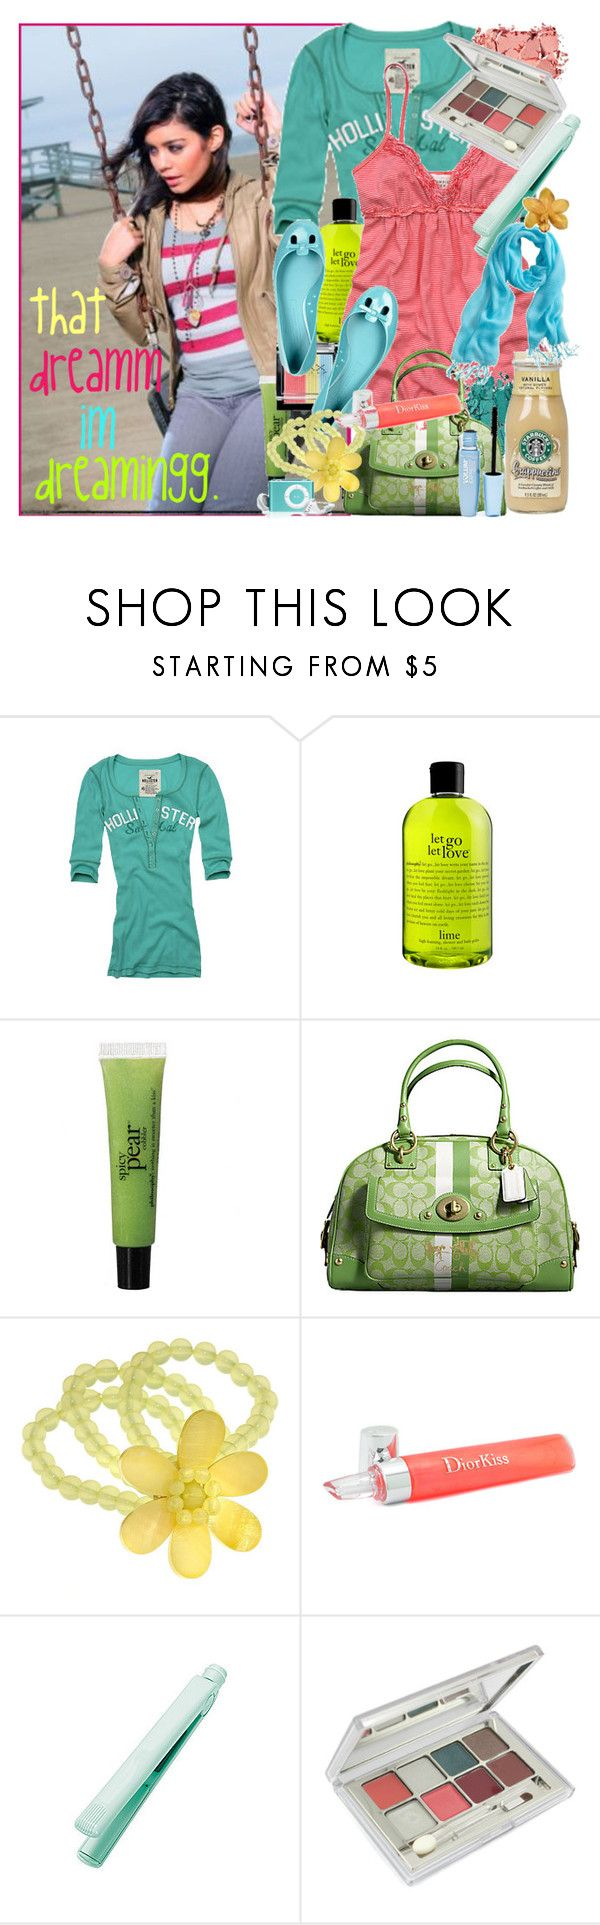 """""""thee climbbb &hearts"""" by d-xlii ❤ liked on Polyvore featuring Hollister Co., philosophy, Abercrombie & Fitch, Coach, Marc Jacobs, Dorothy Perkins, Christian Dior, CHI, Nina Ricci and Maybelline"""